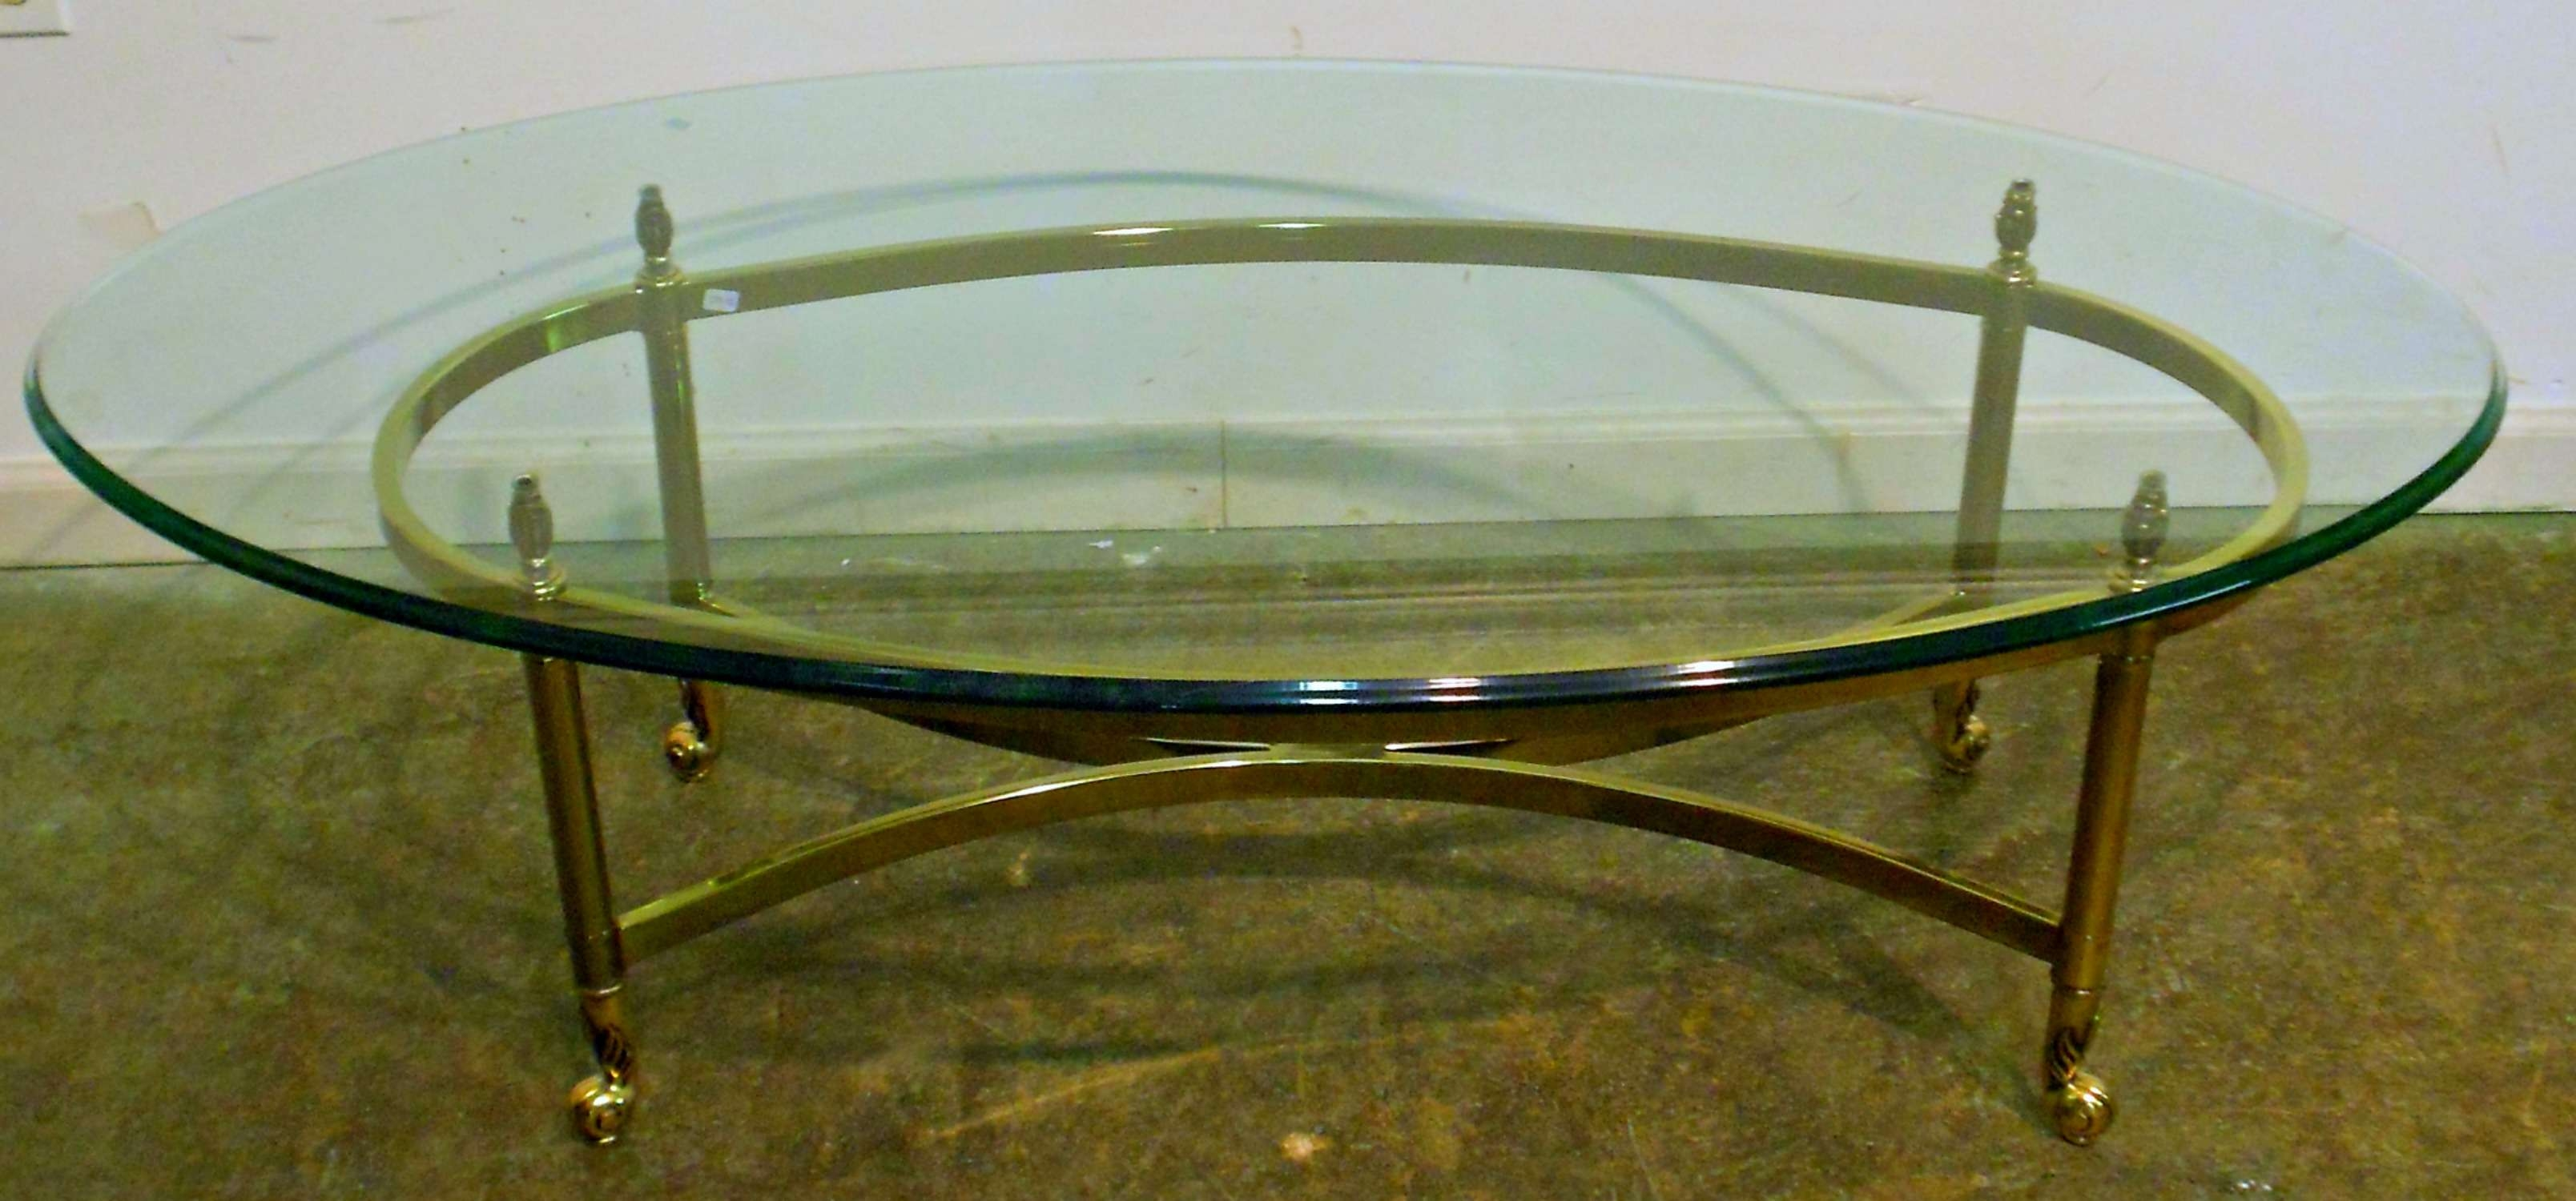 Trendy Oval Glass Coffee Tables With Regard To Oval Glass Top Coffee Table With Brass Frame And Wheels For (View 6 of 20)